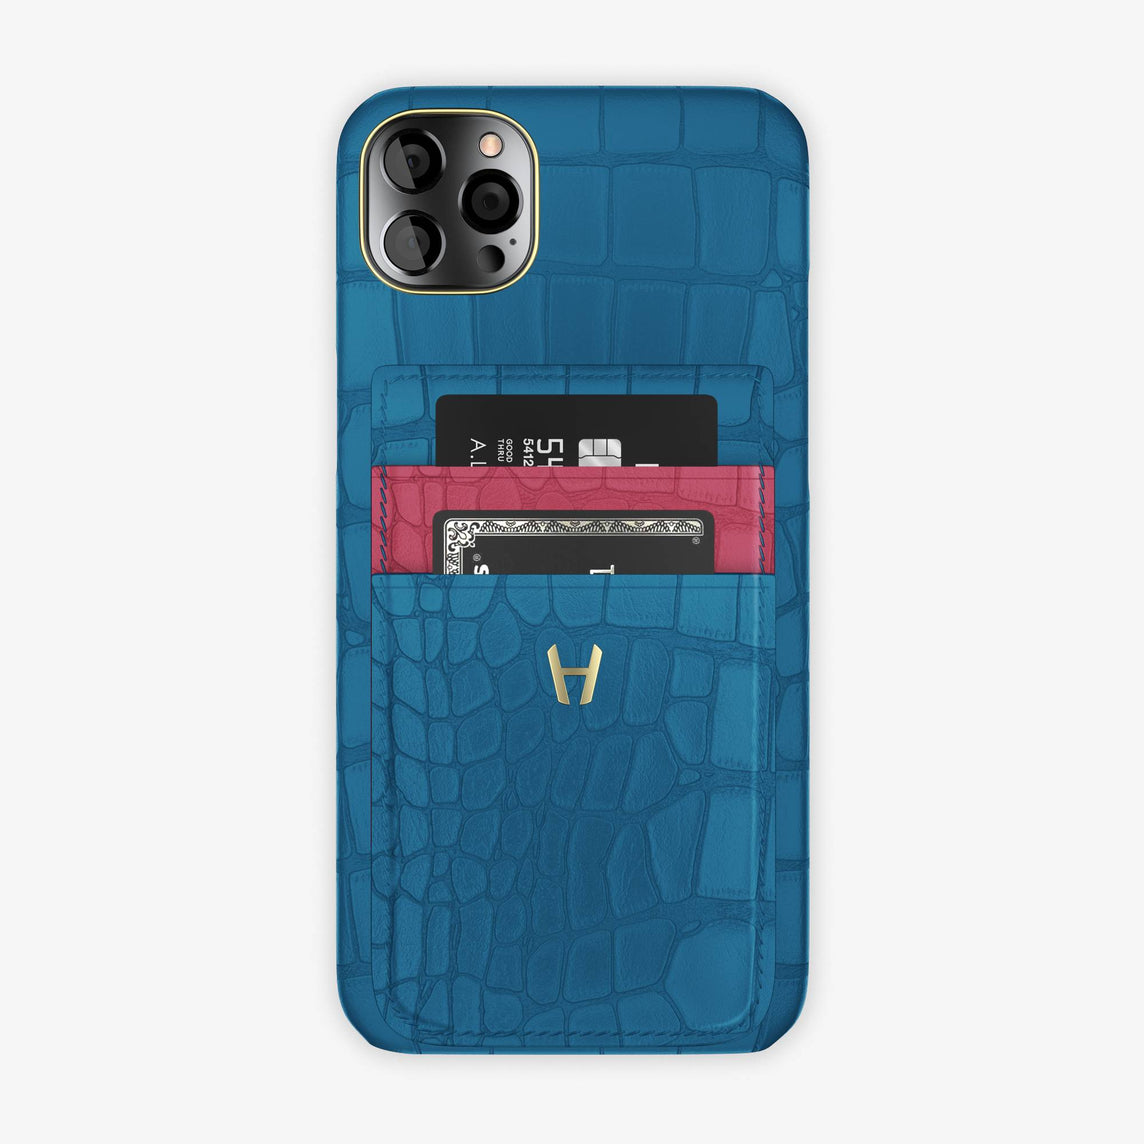 Alligator Pocket Case iPhone 12 Pro Max | Blue Lagoon/Pink Girly - Yellow Gold